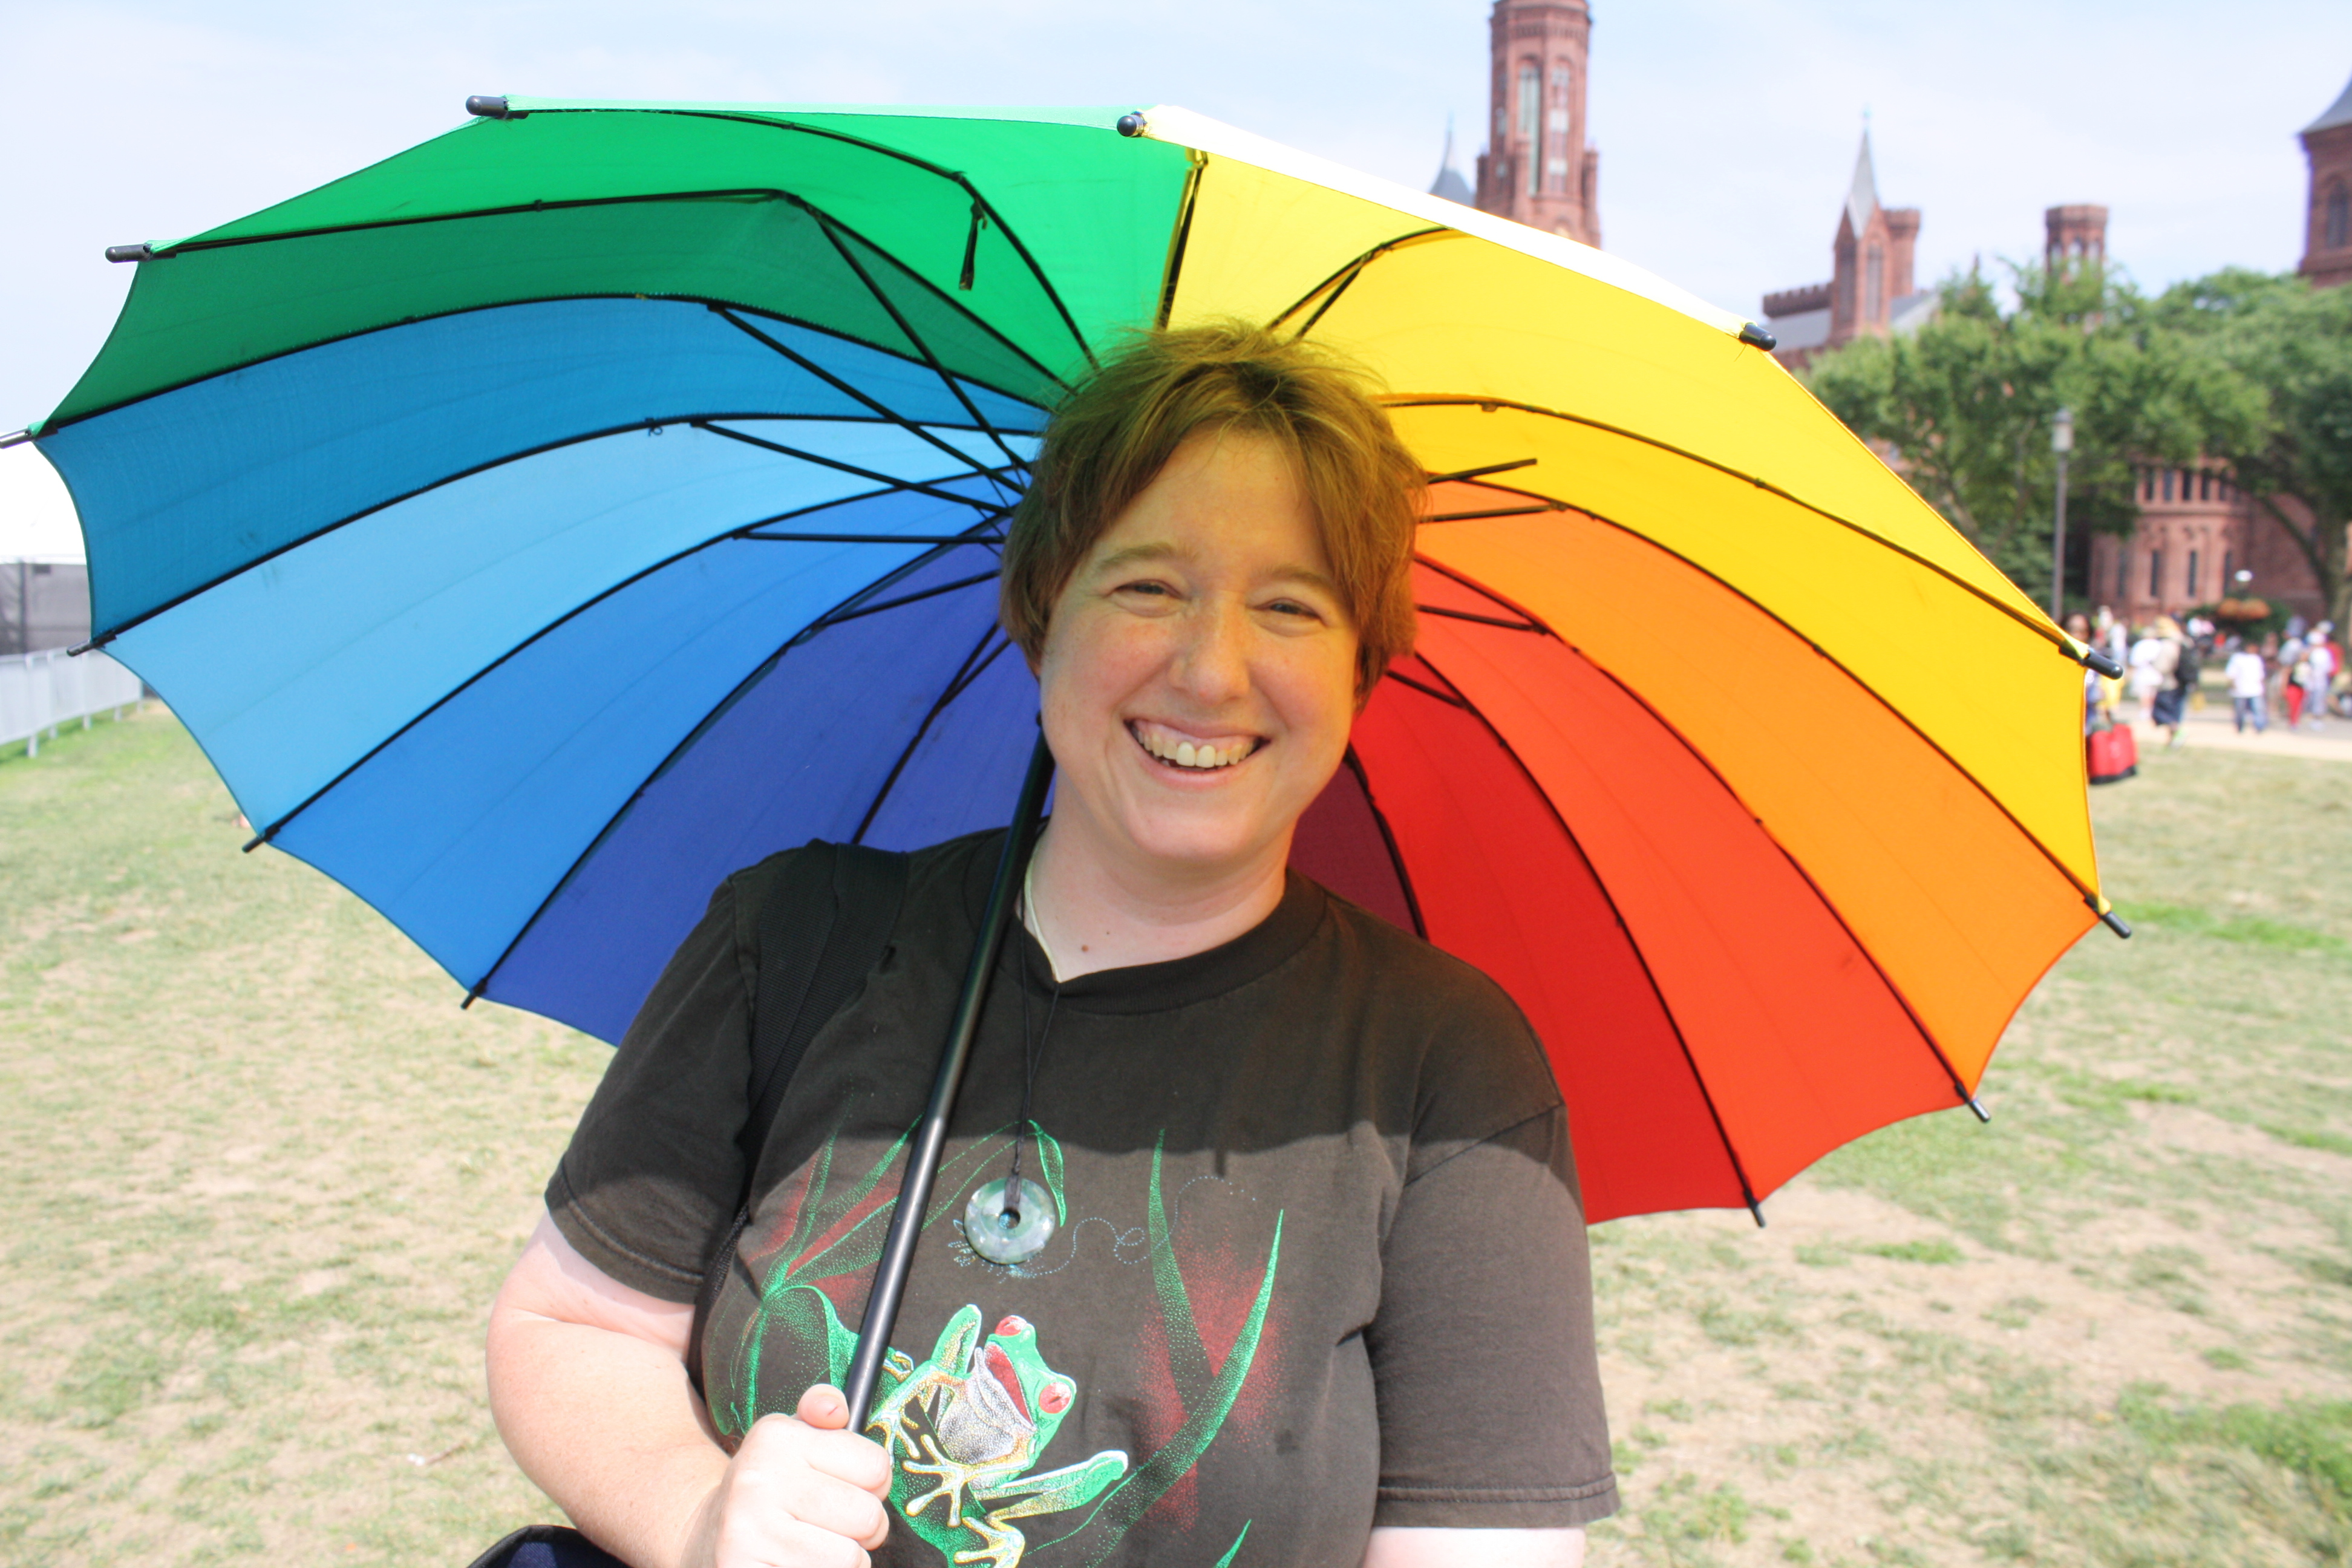 By Elvert Barnes from Hyattsville MD, USA (02.RainbowUmbrella.45thSFF.WDC.4July2011) [CC BY-SA 2.0 (http://creativecommons.org/licenses/by-sa/2.0)], via Wikimedia Commons